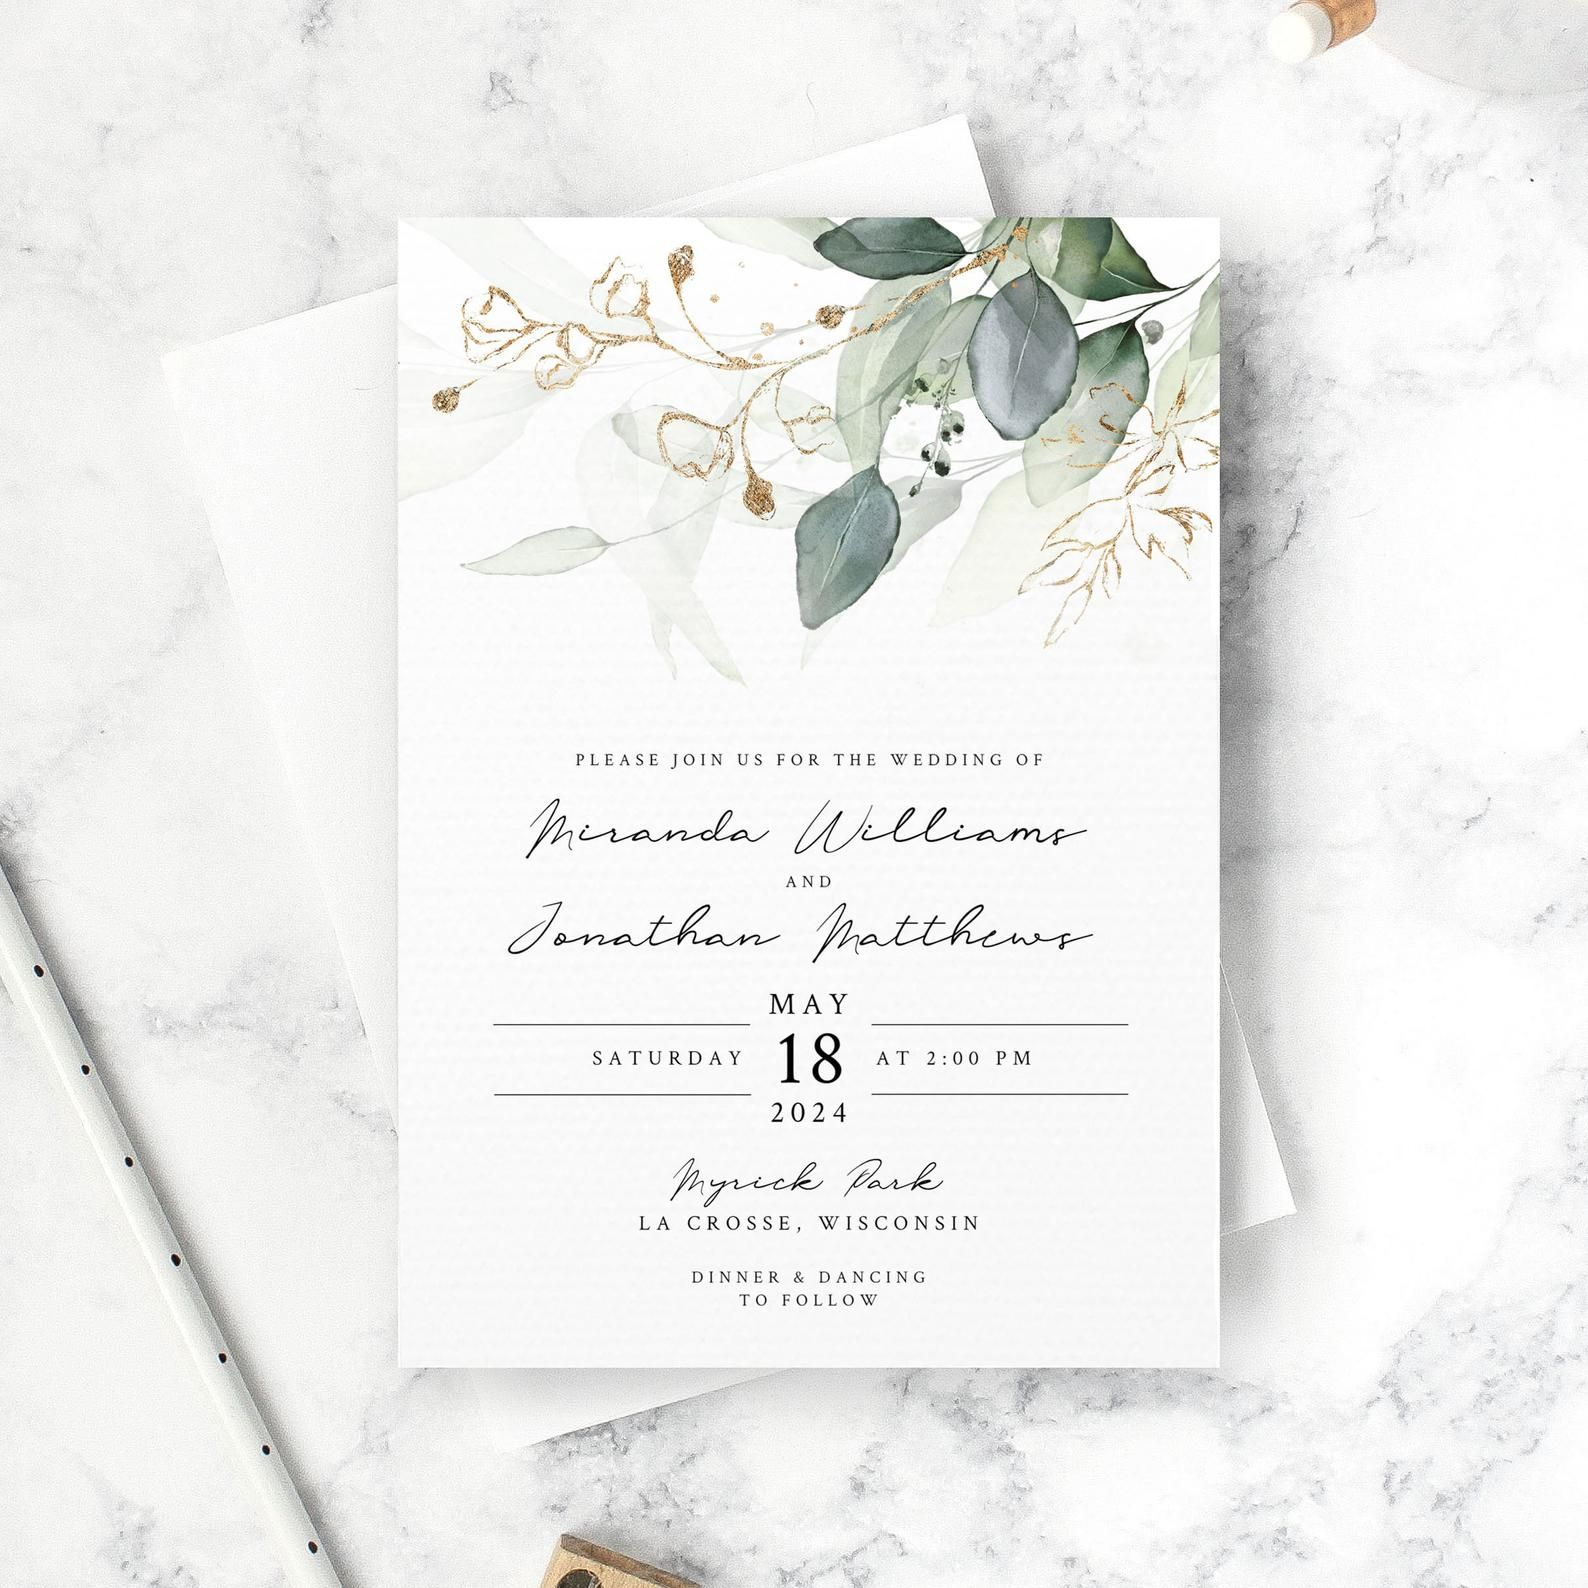 Eucalyptus Wedding Invitation Set Template Invitation Only Gold Watercolor Greenery Design 001 In 2020 Eucalyptus Wedding Invitation Wedding Invitation Sets Wedding Invitations